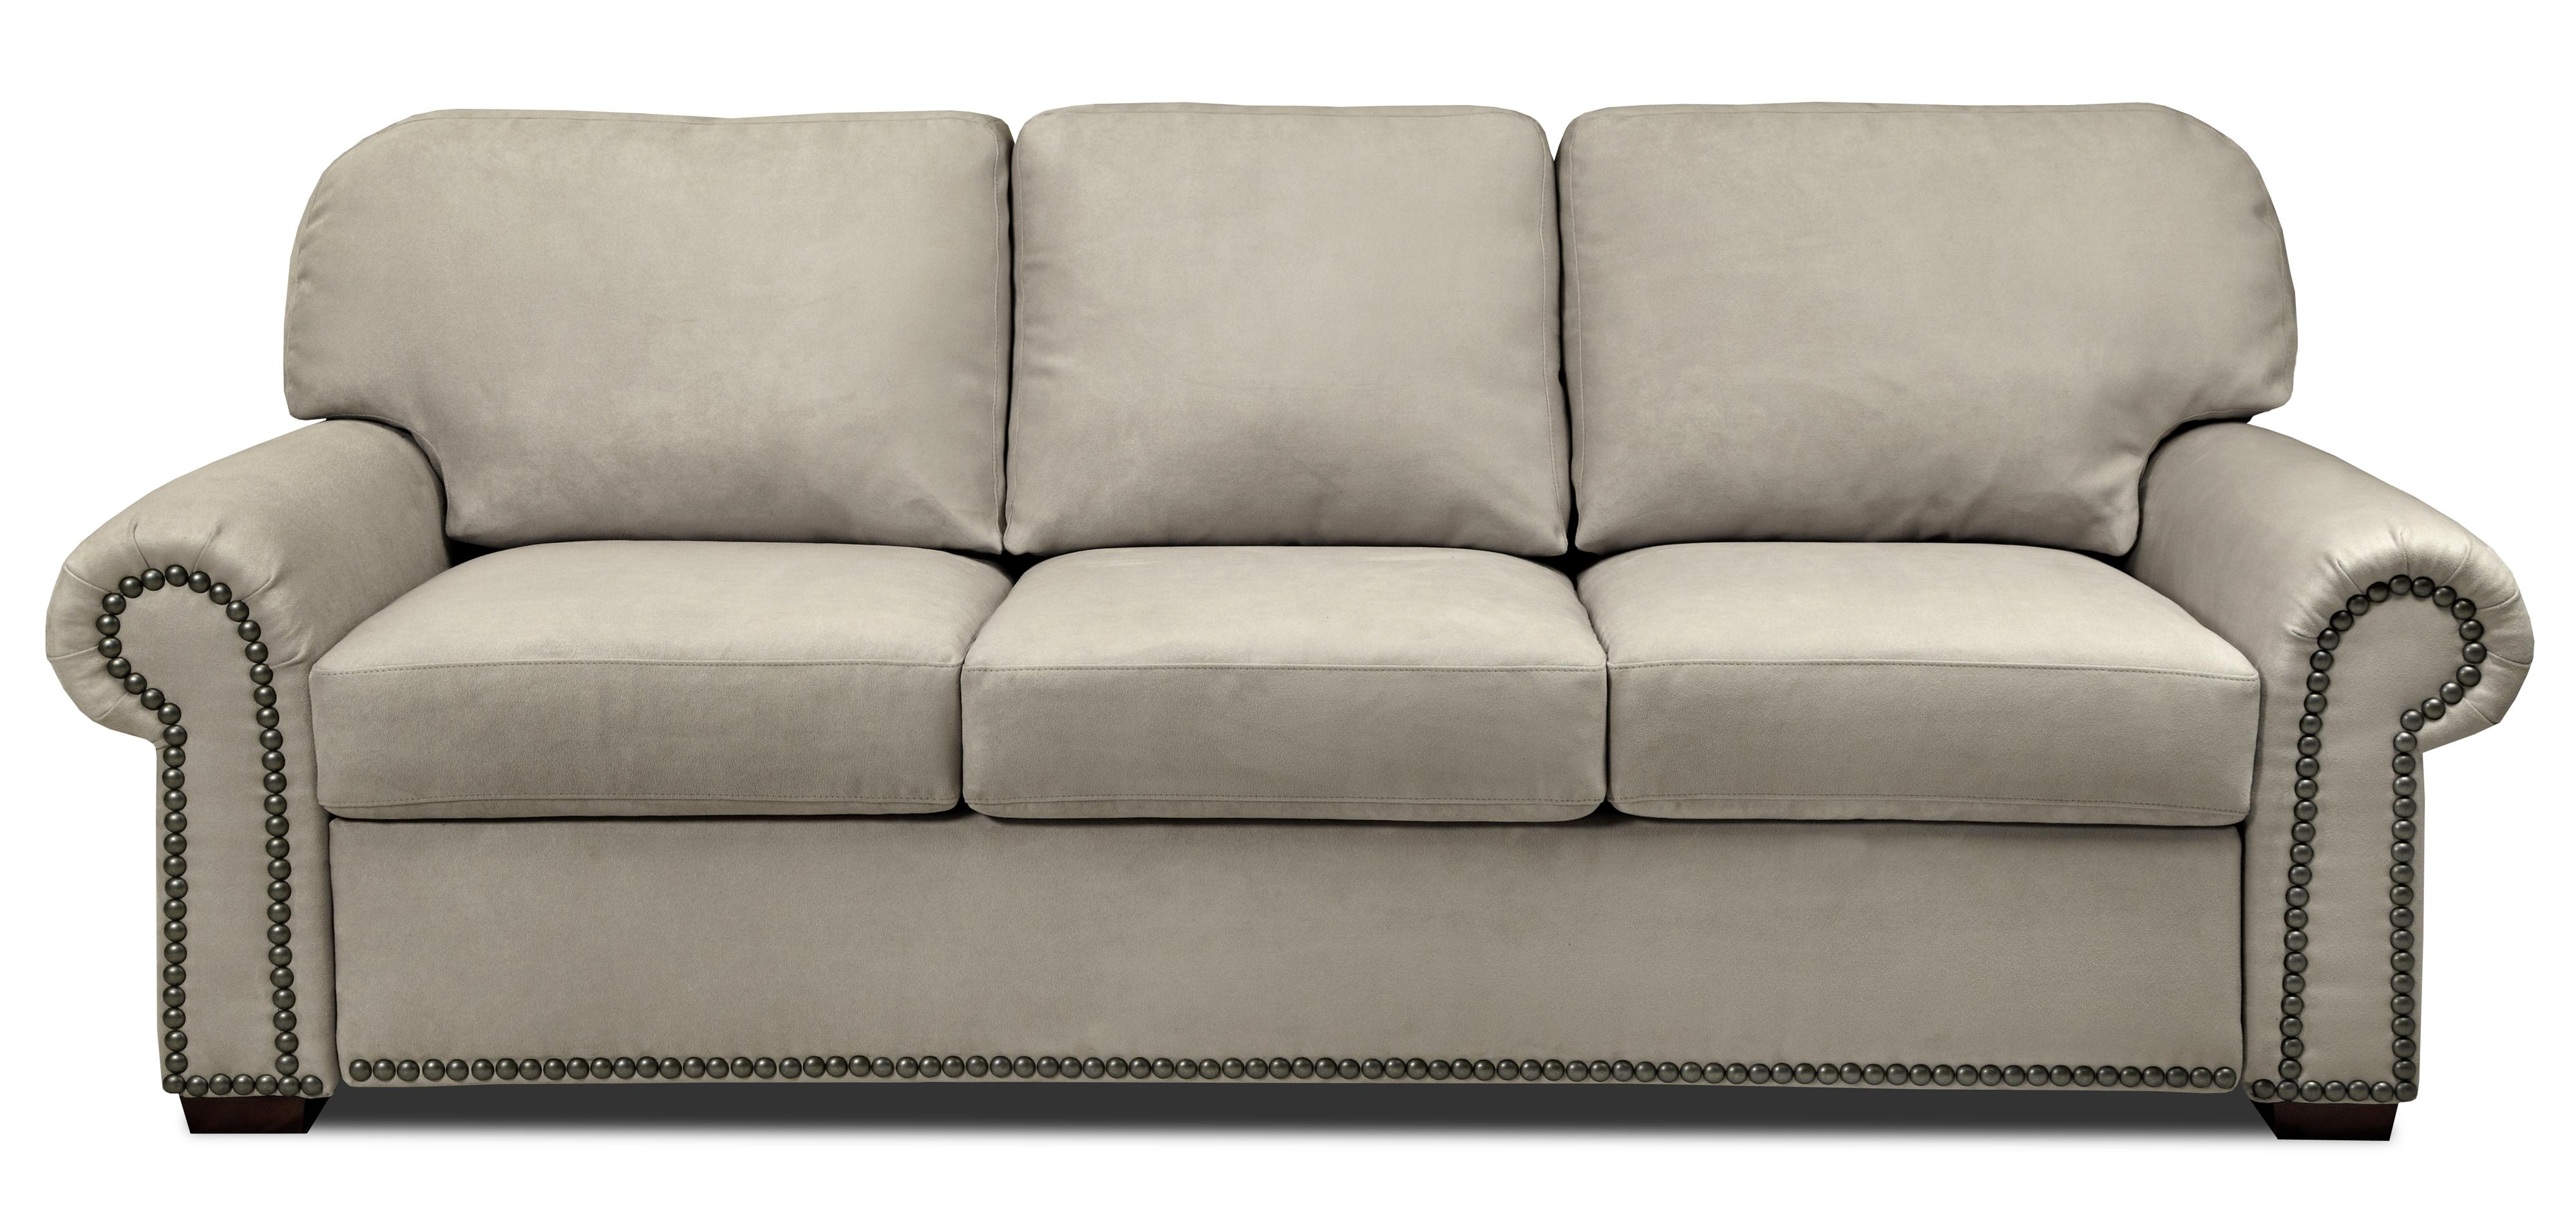 gwn gwen leather sh loveseats sleeper by sofas pr cs d american products comfort comforter